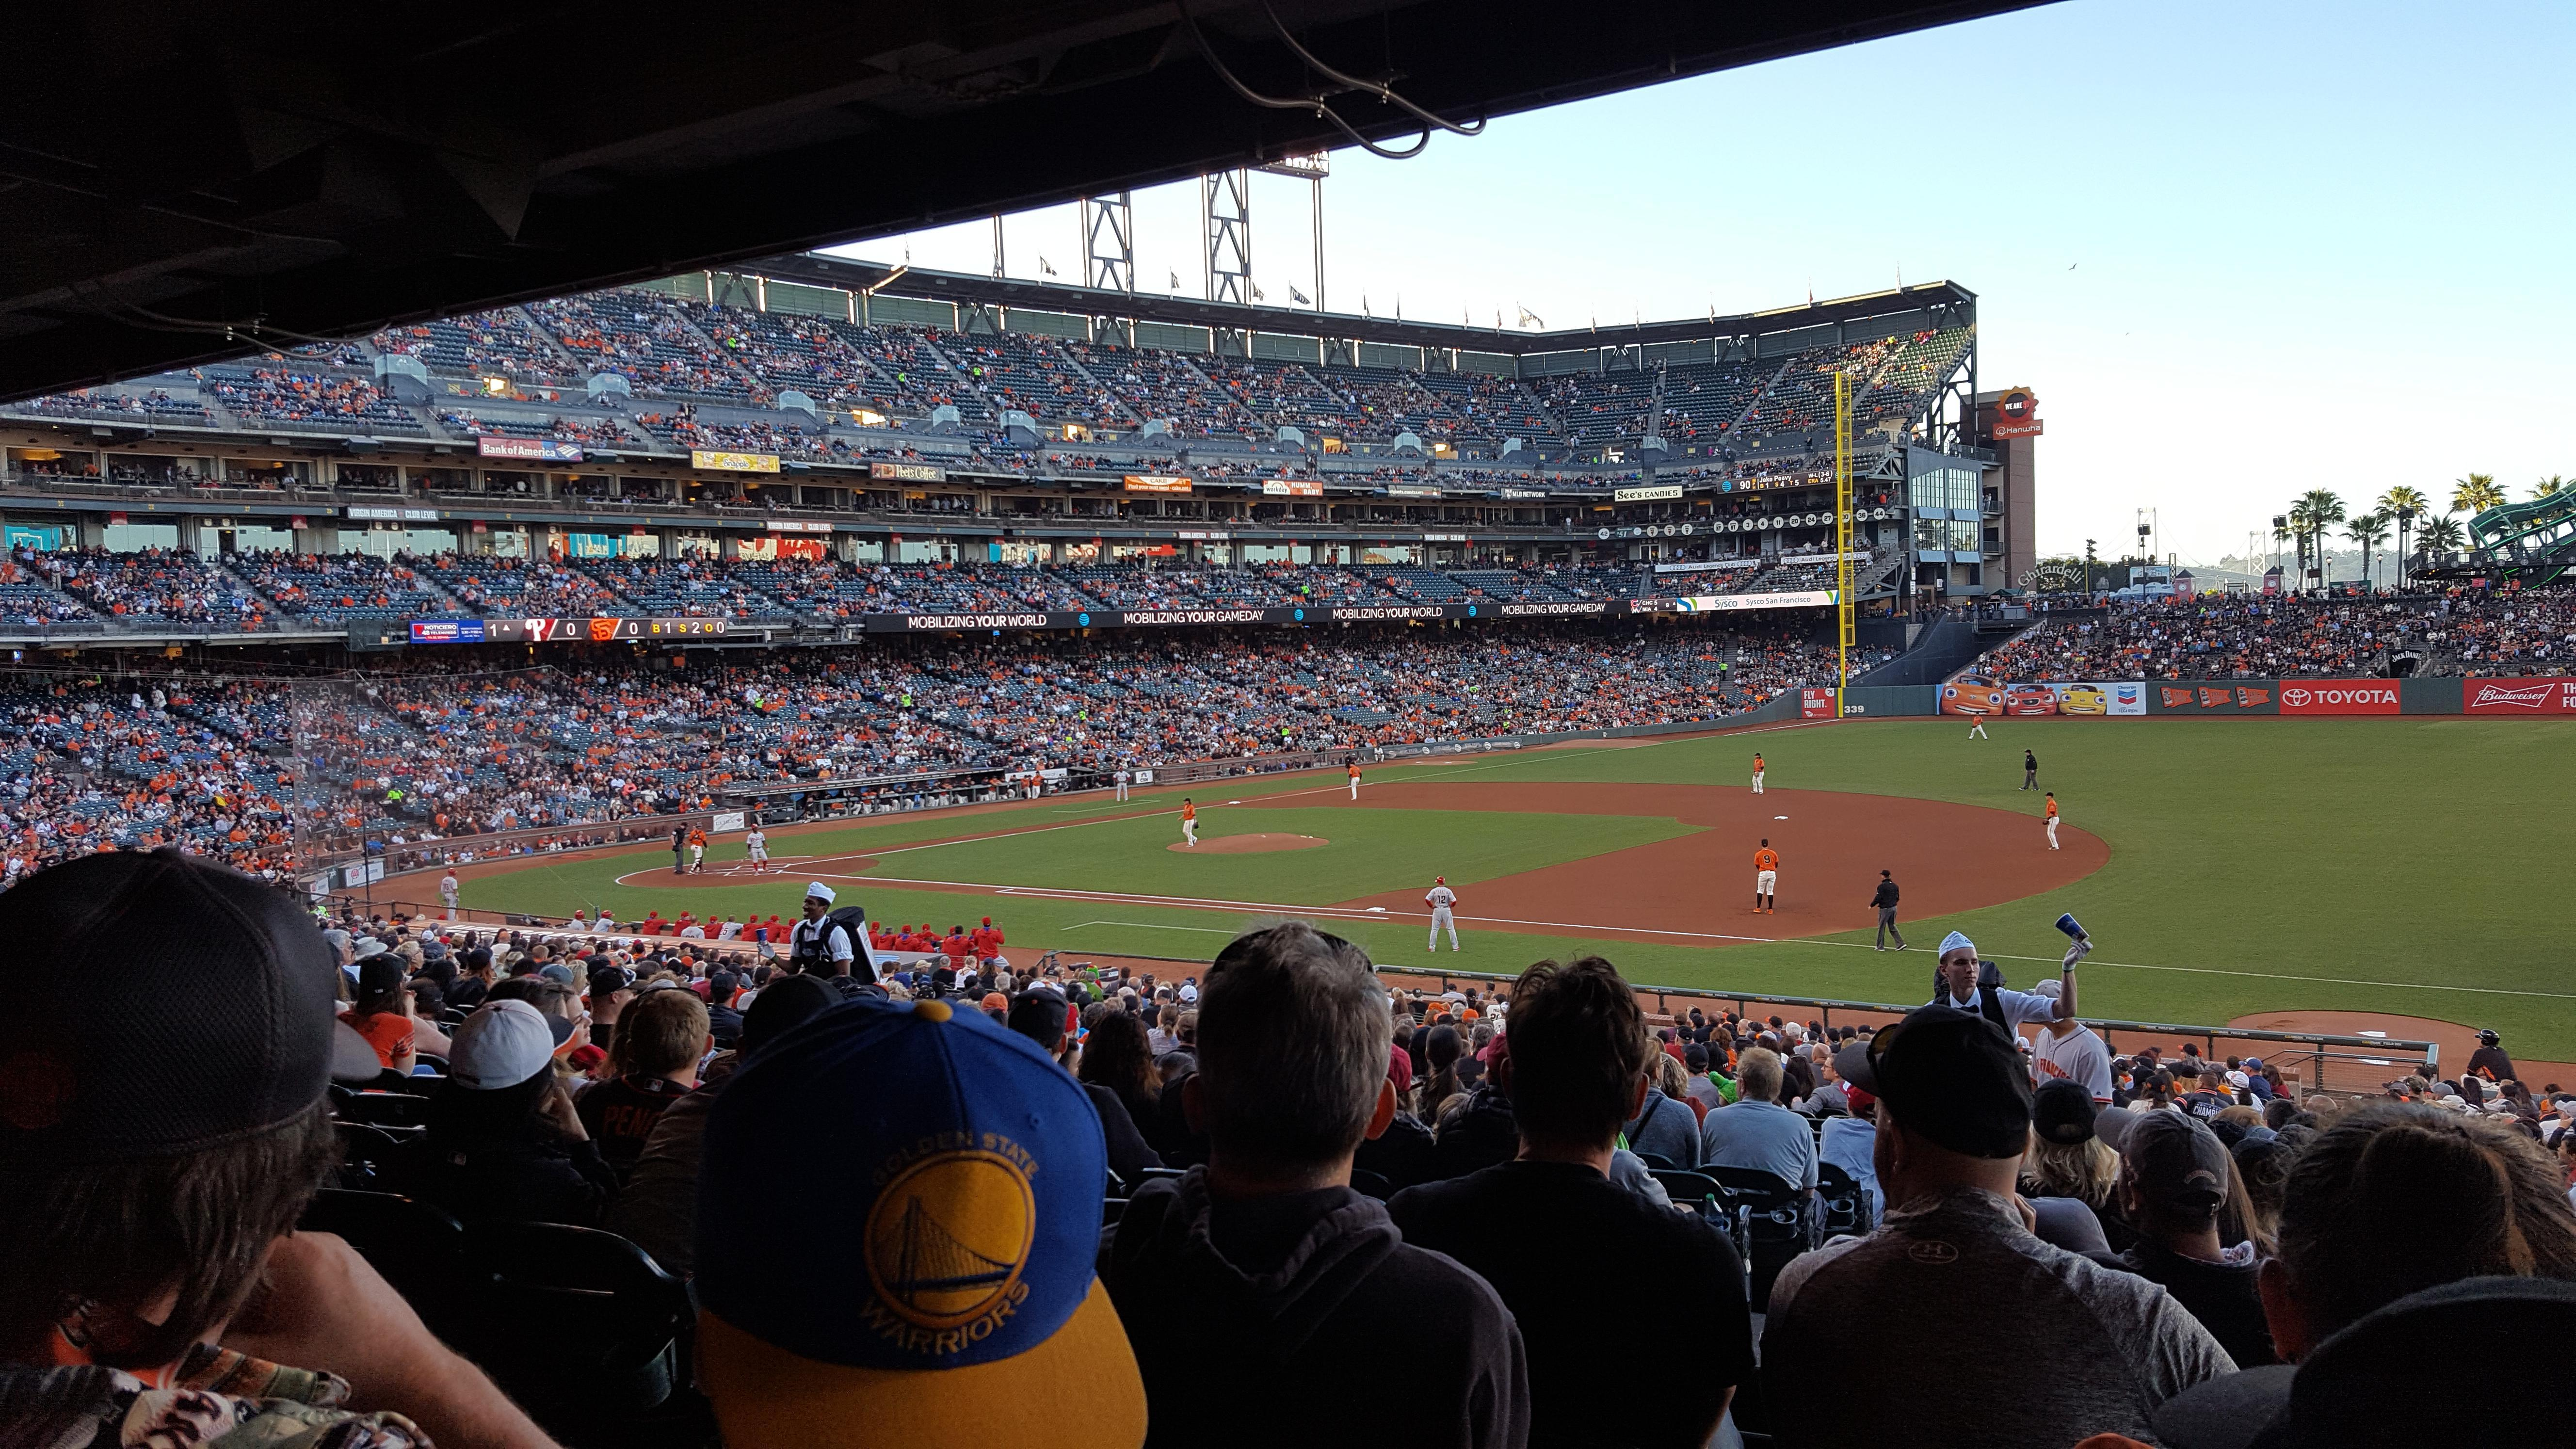 AT&T Park Section 104 Row 36 Seat 14